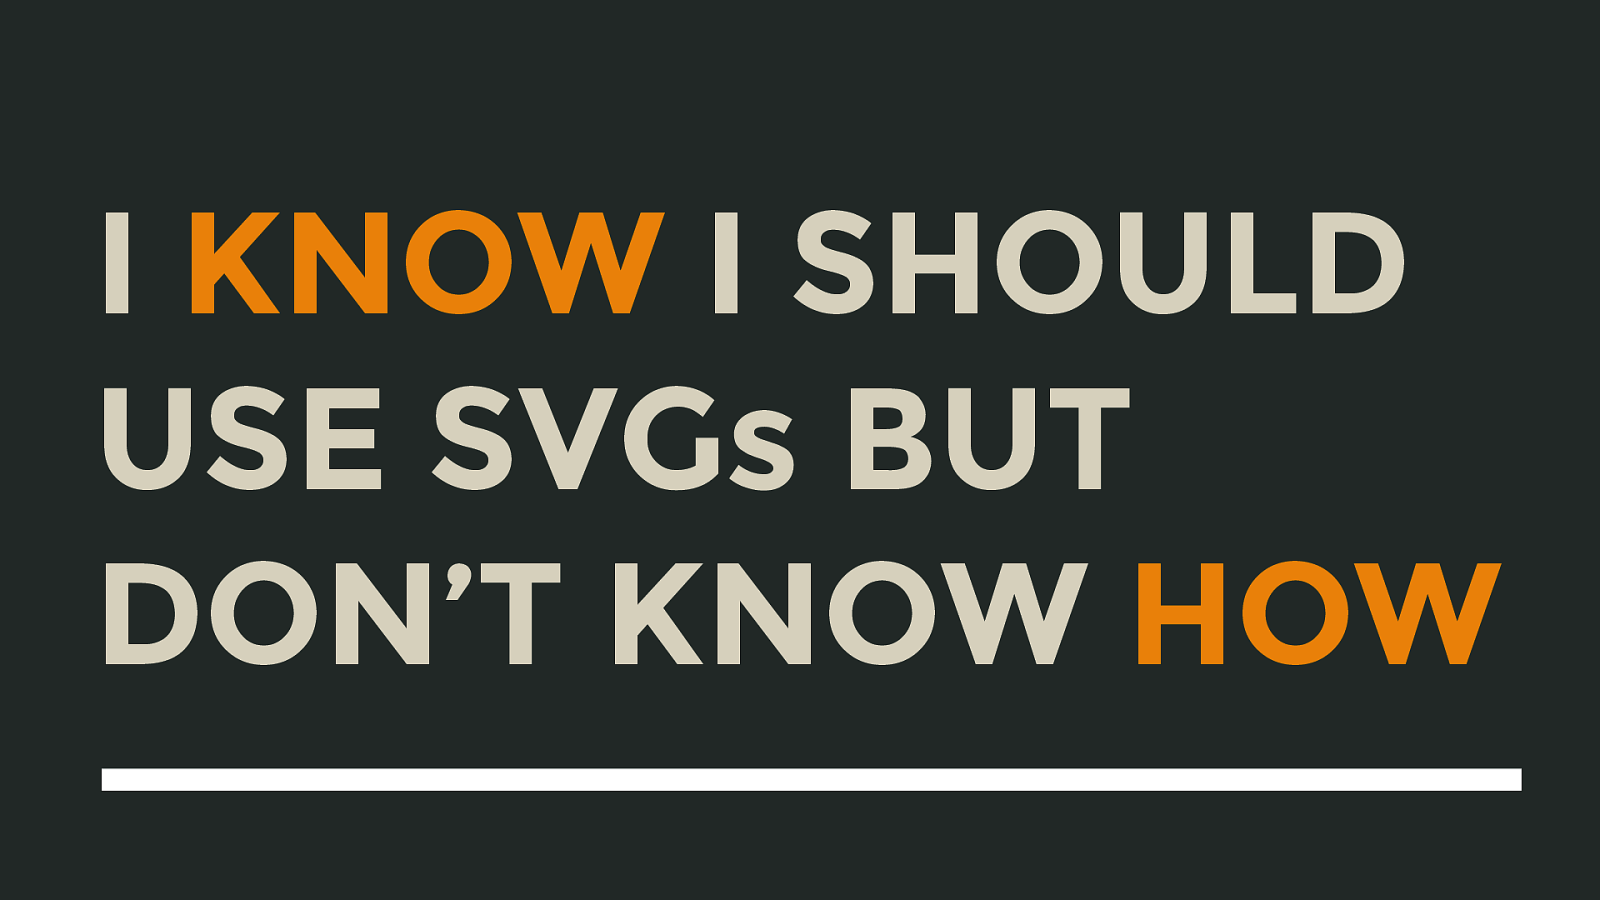 I Know I Should Use SVGs But I Don't Know How